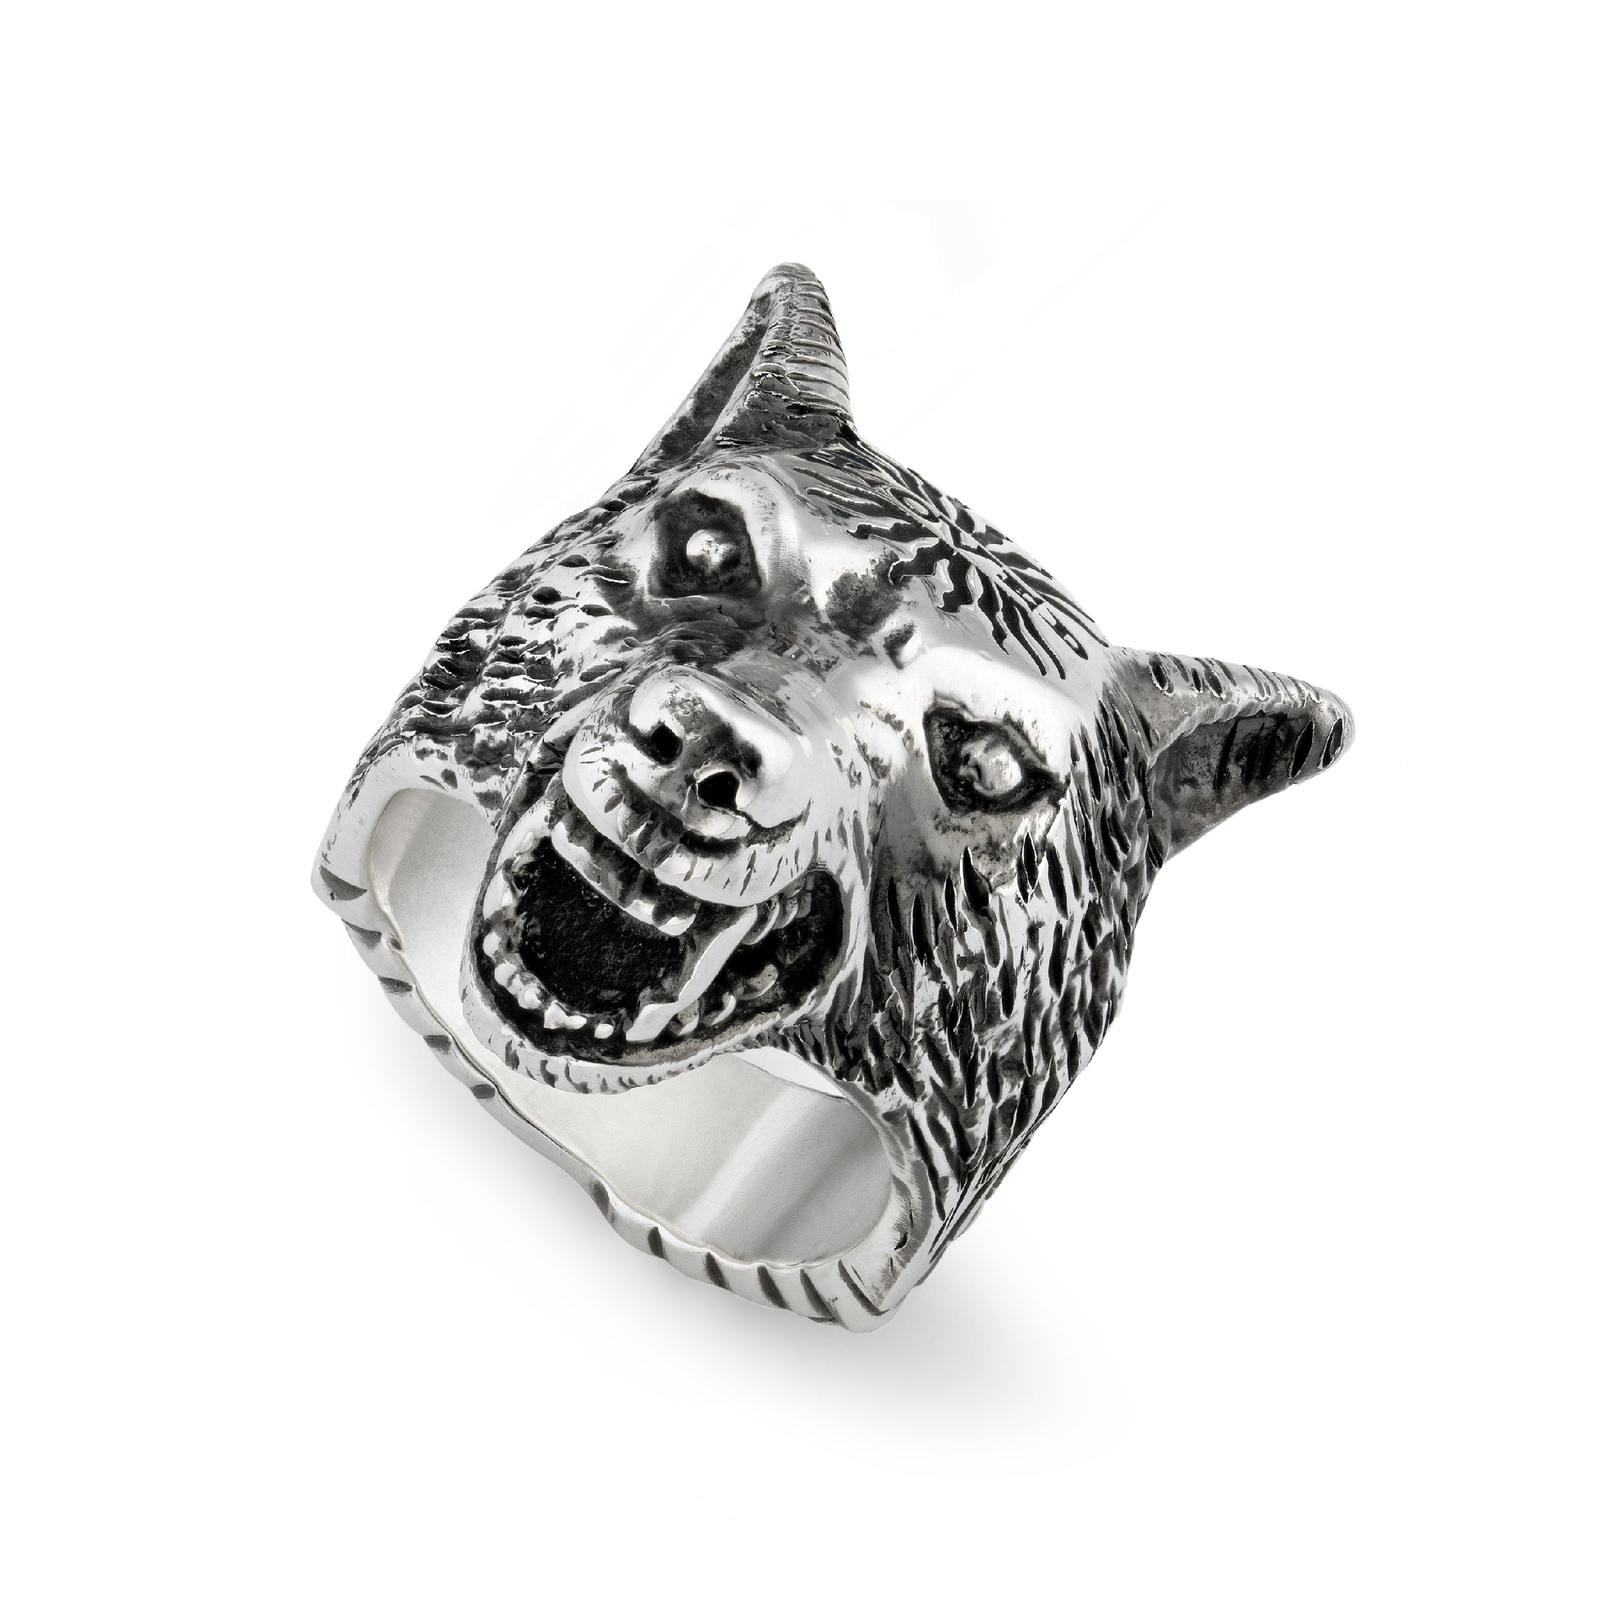 Gucci Anger Forest Wolf Head Ring in Silver - Ring Size Q